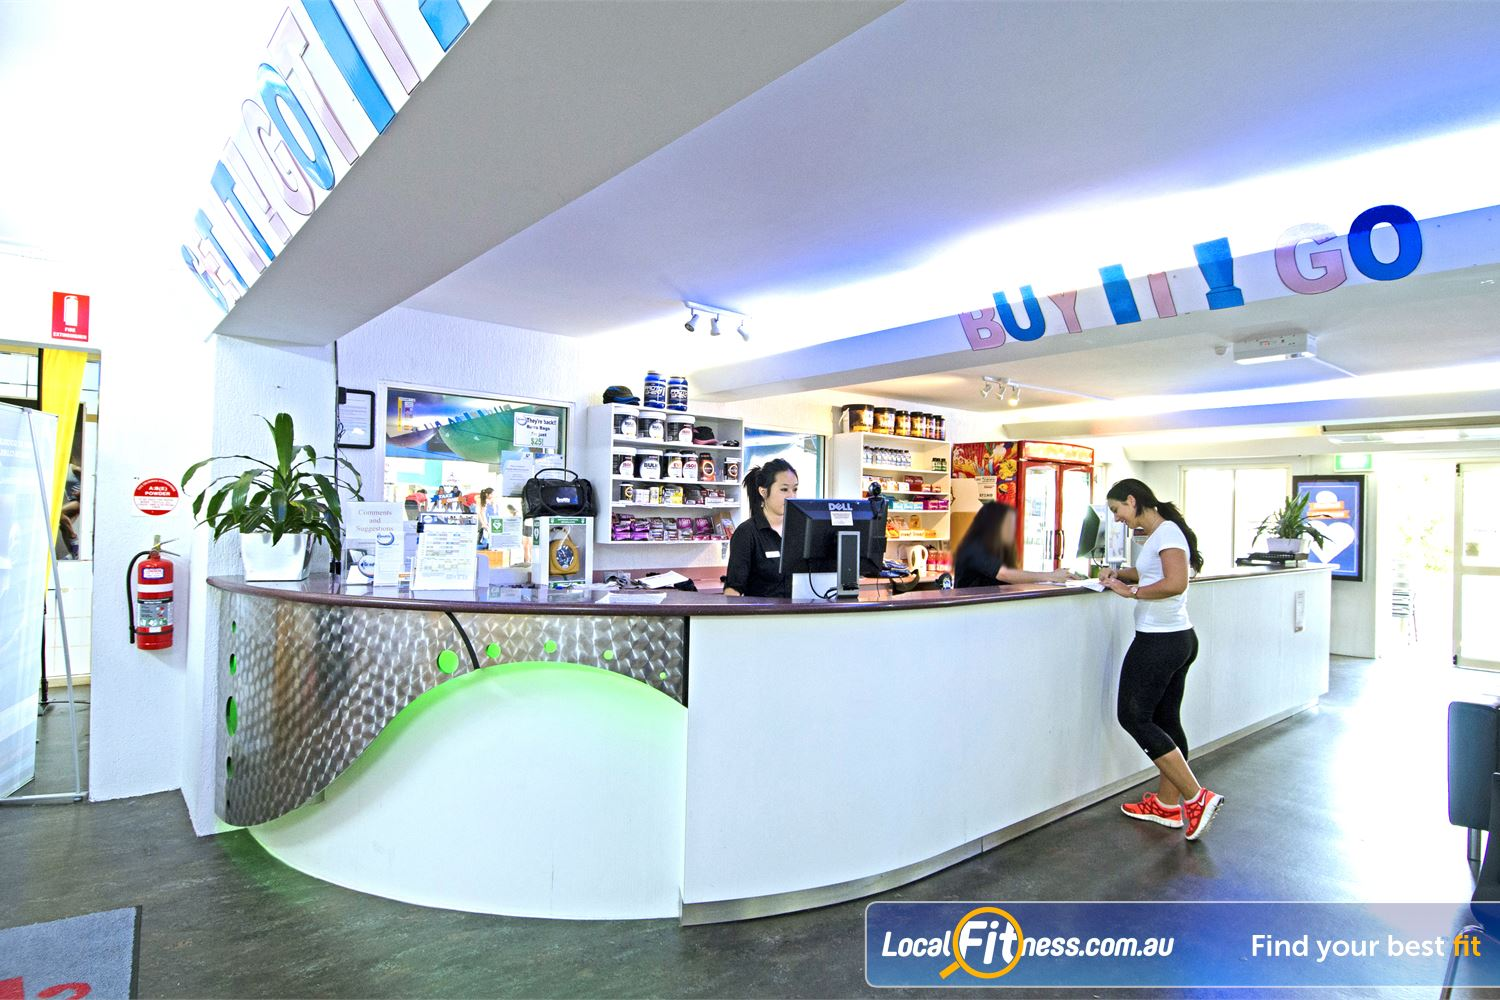 Goodlife Health Clubs Graceville Meet our friendly Goodlife team who will take care of your every need.